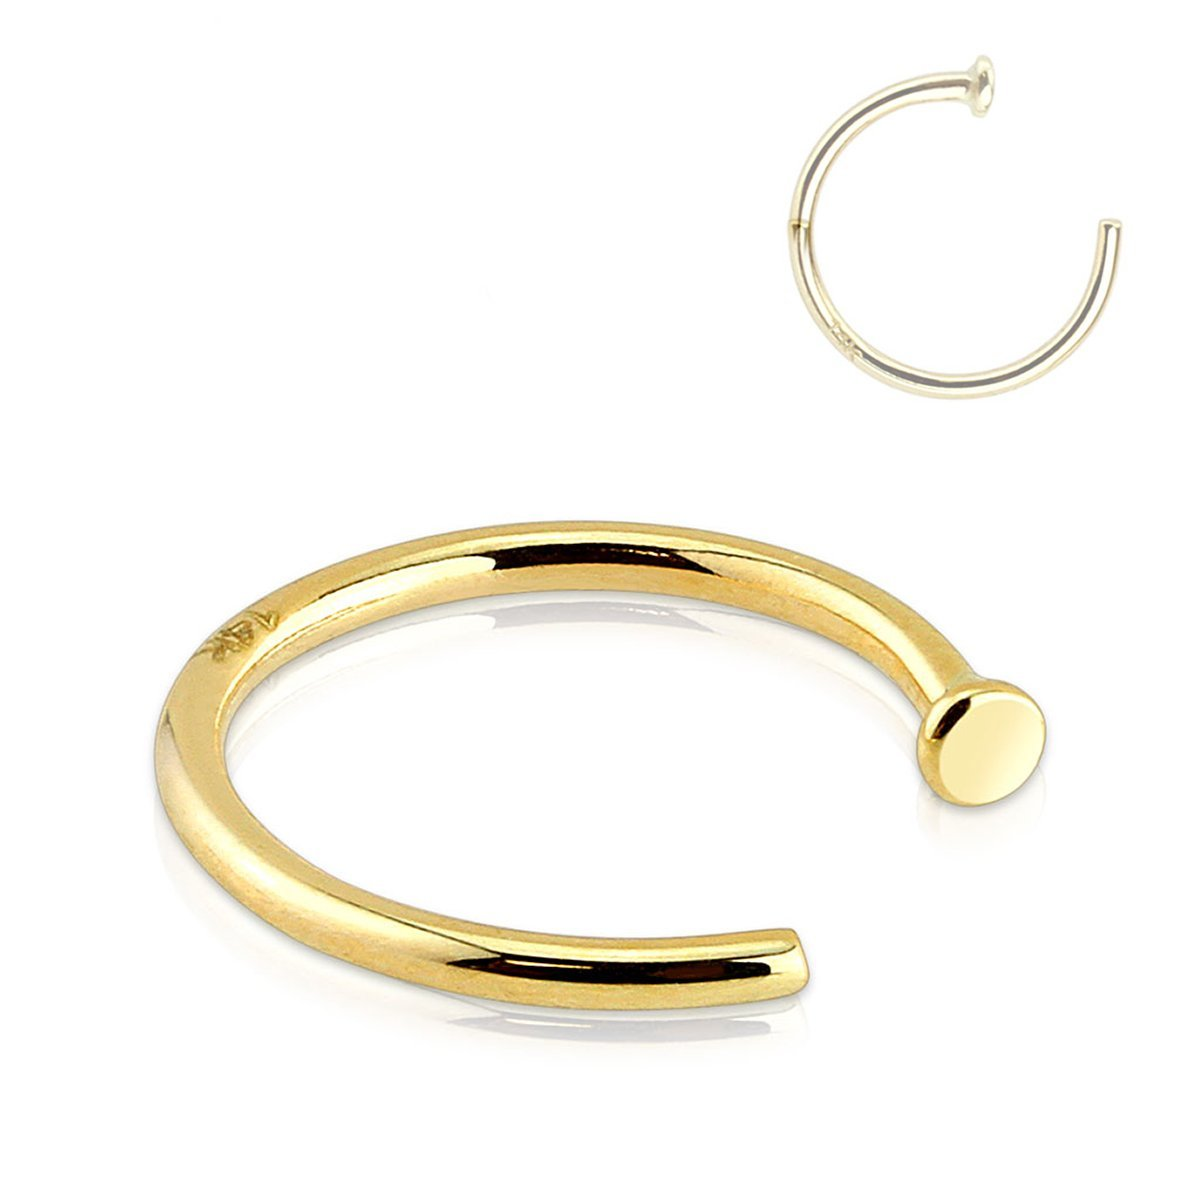 Forbidden Body Jewelry 20g 8mm Solid 14K Yellow Gold Nose Hoop Ring